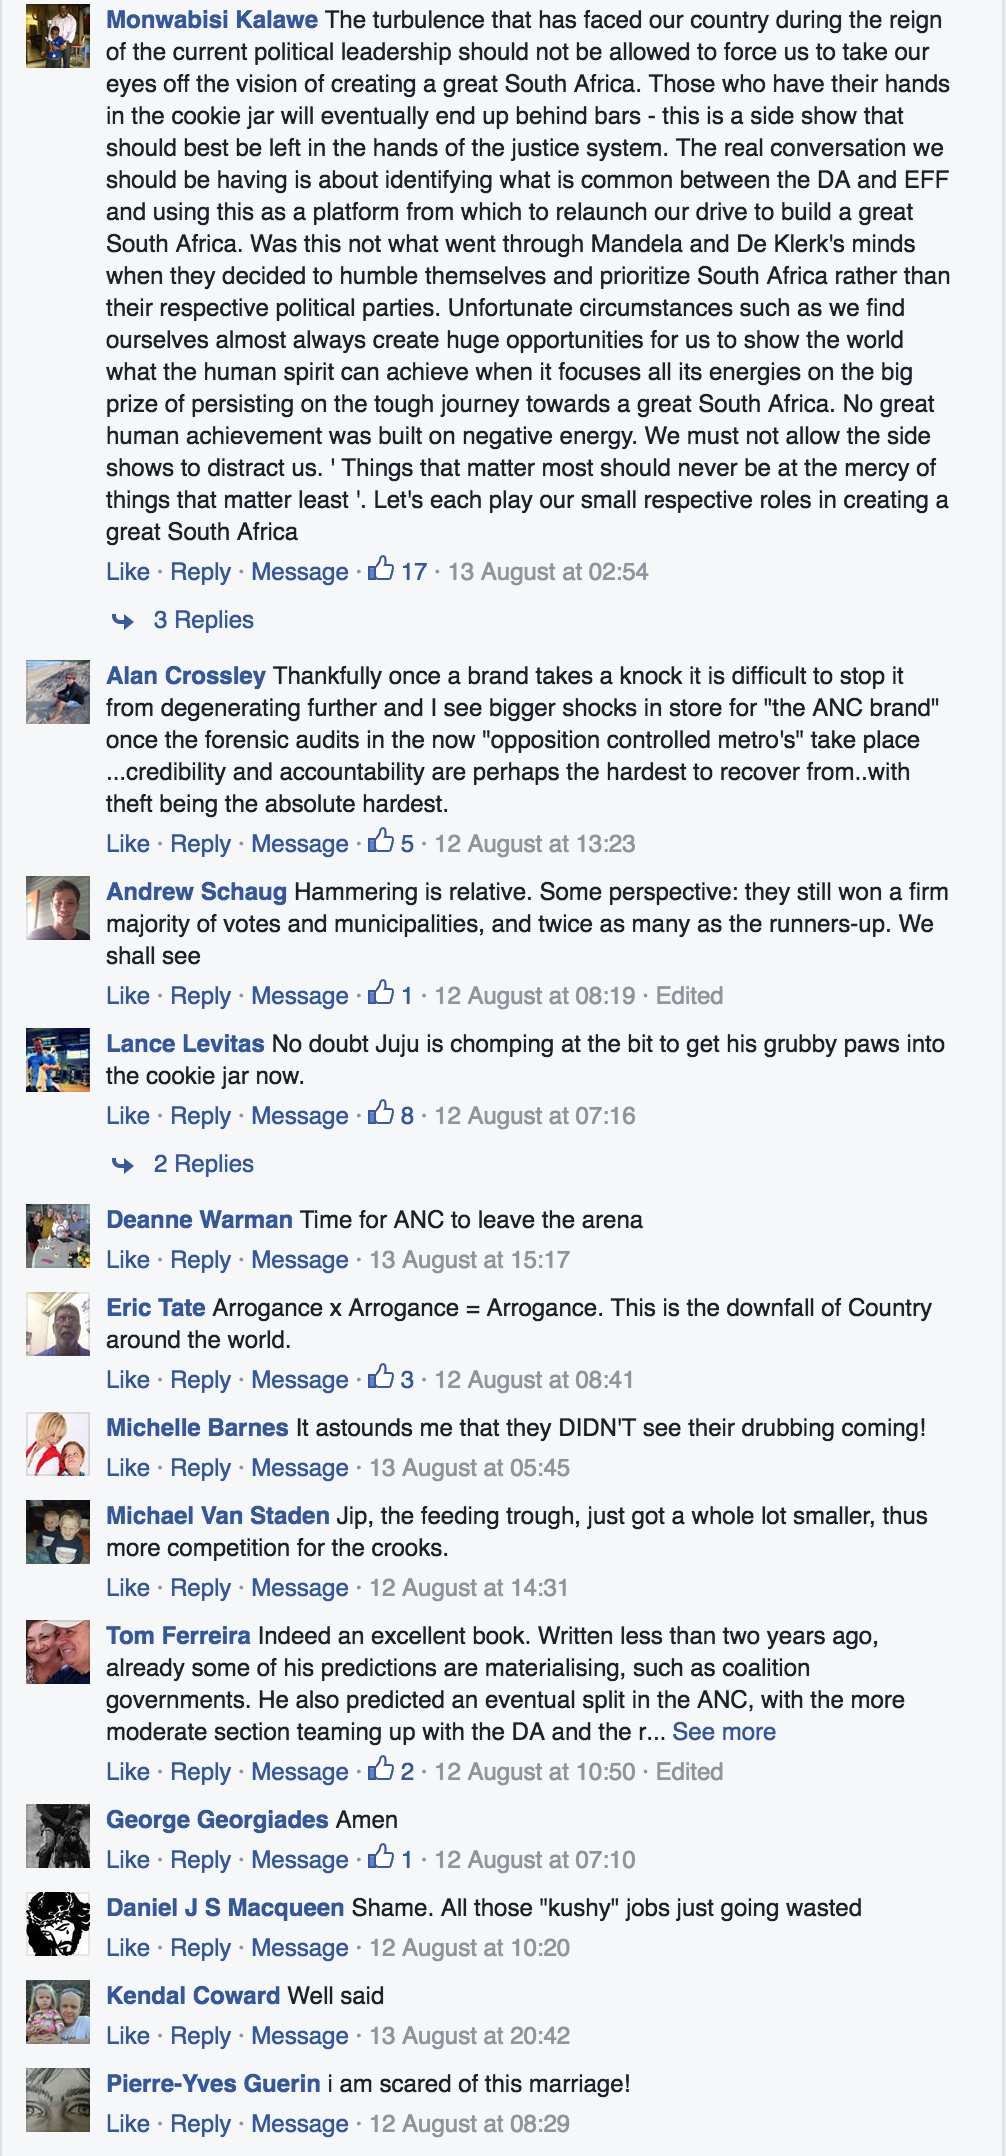 Some of the comments posted under the link to the coalition story on Alec Hogg's Facebook page.